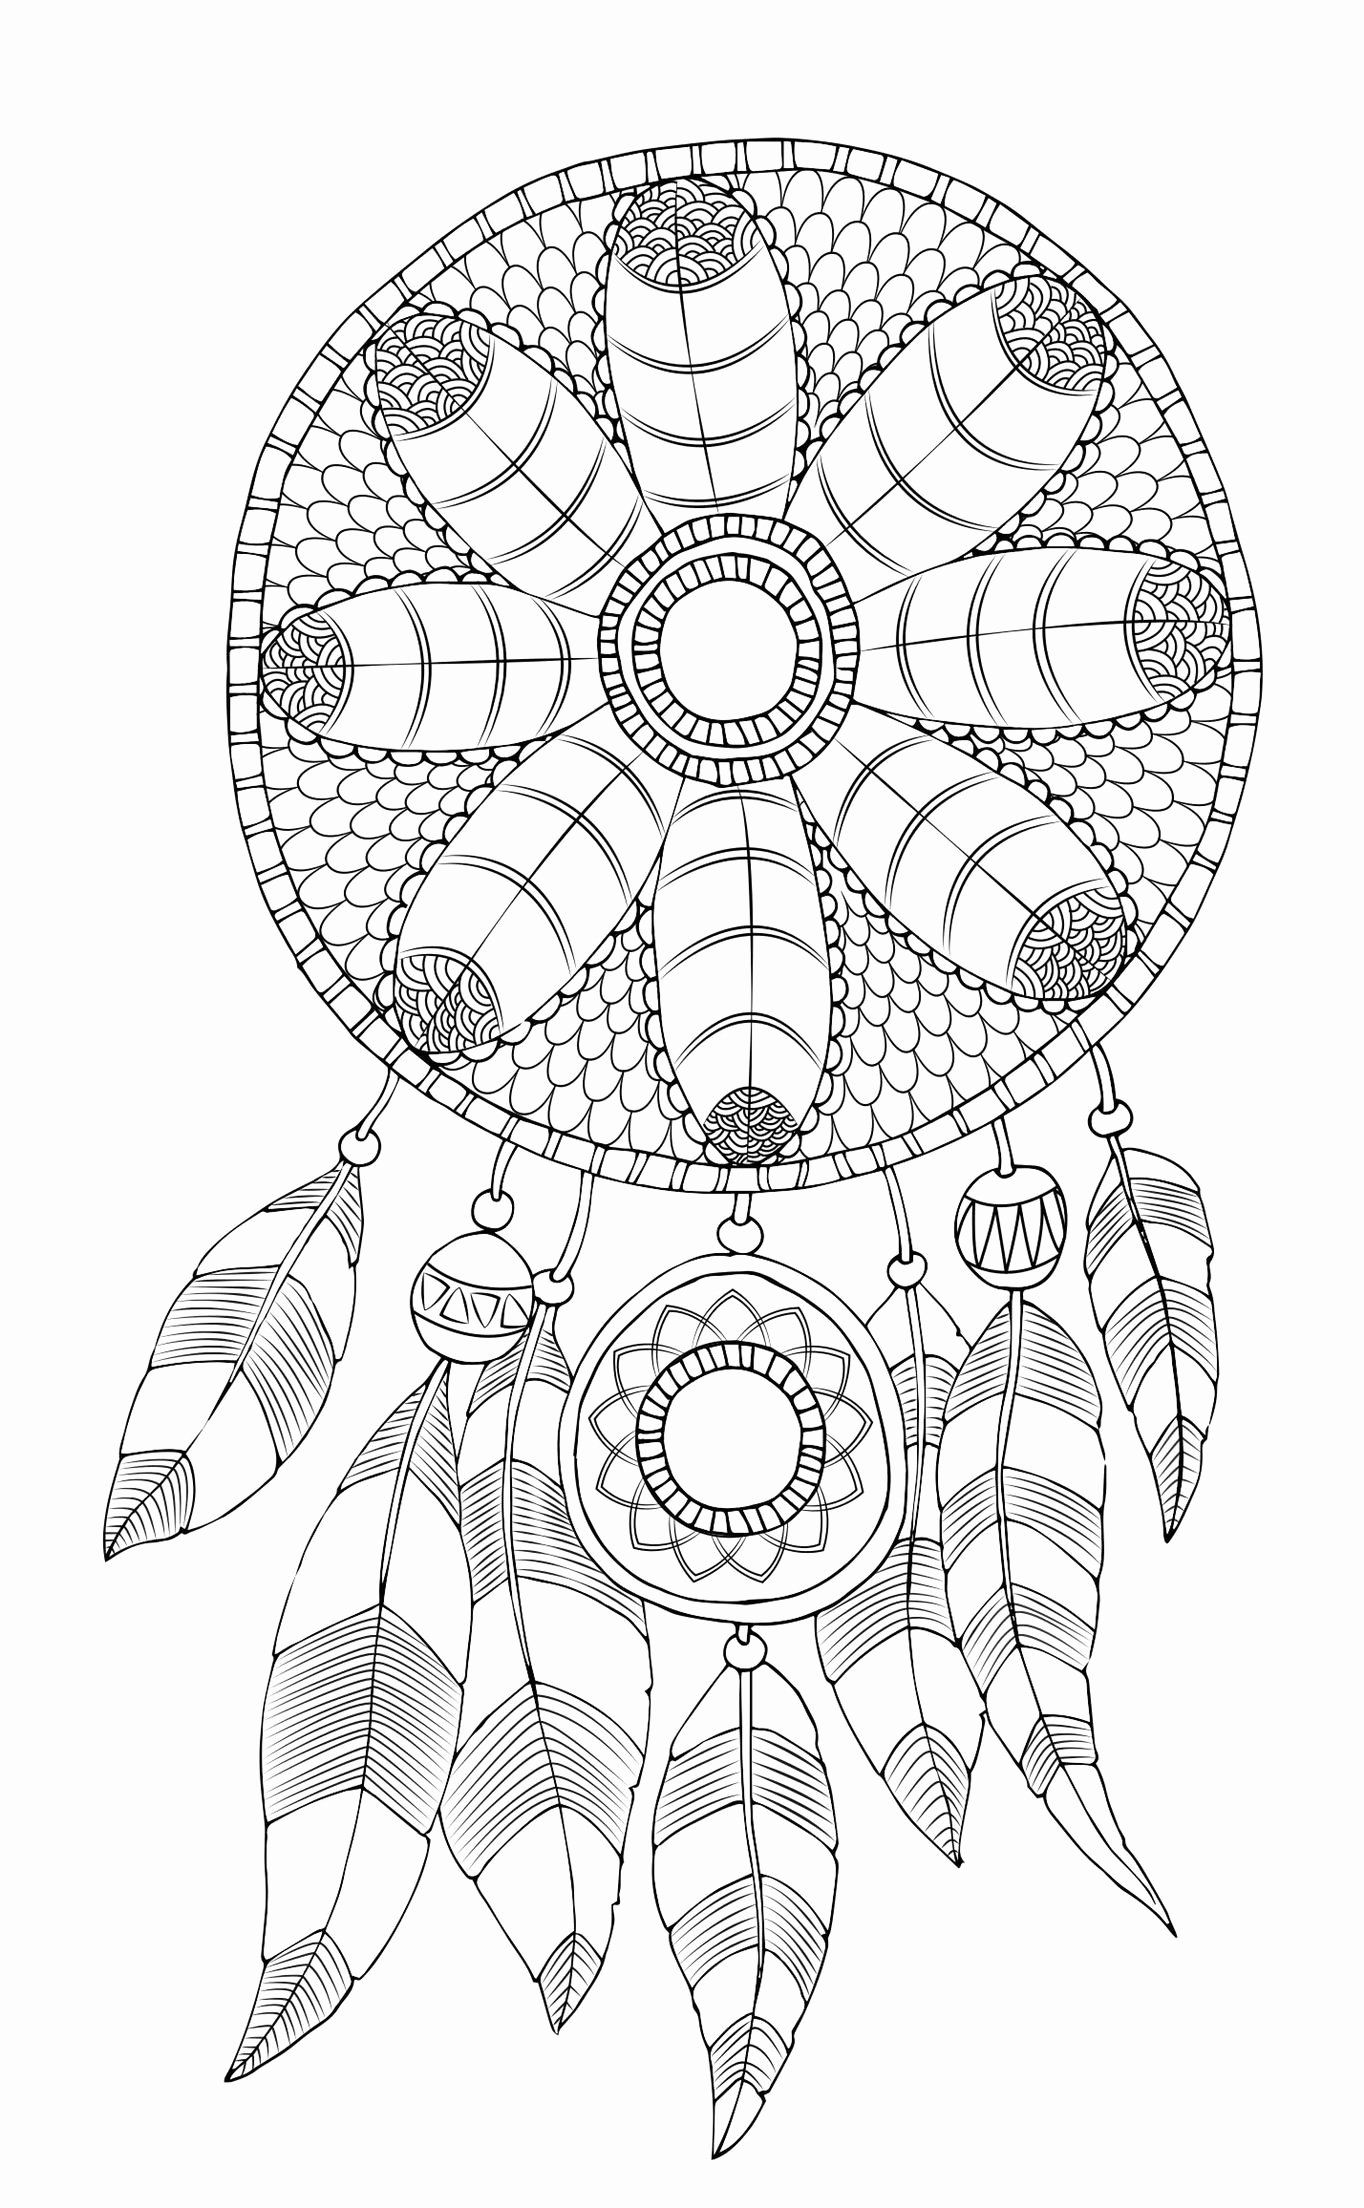 Dream Catcher Coloring Book Lovely Dream Catcher Coloring Pages To And Print For Free Kleurplaten